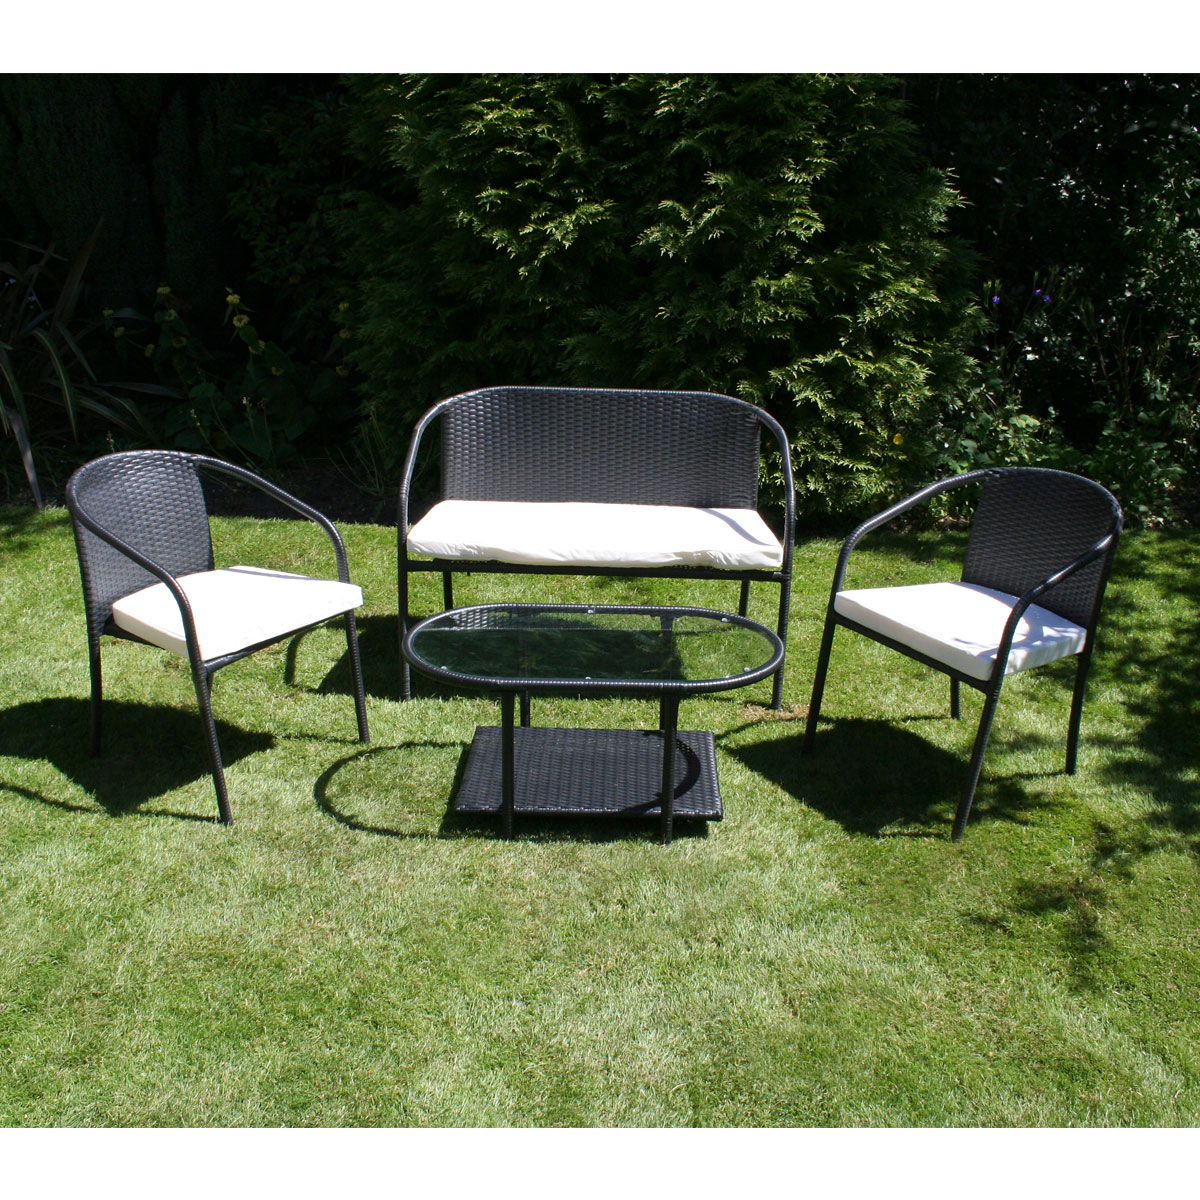 charles bentley outdoor patio 4 piece sofa black rattan. Black Bedroom Furniture Sets. Home Design Ideas